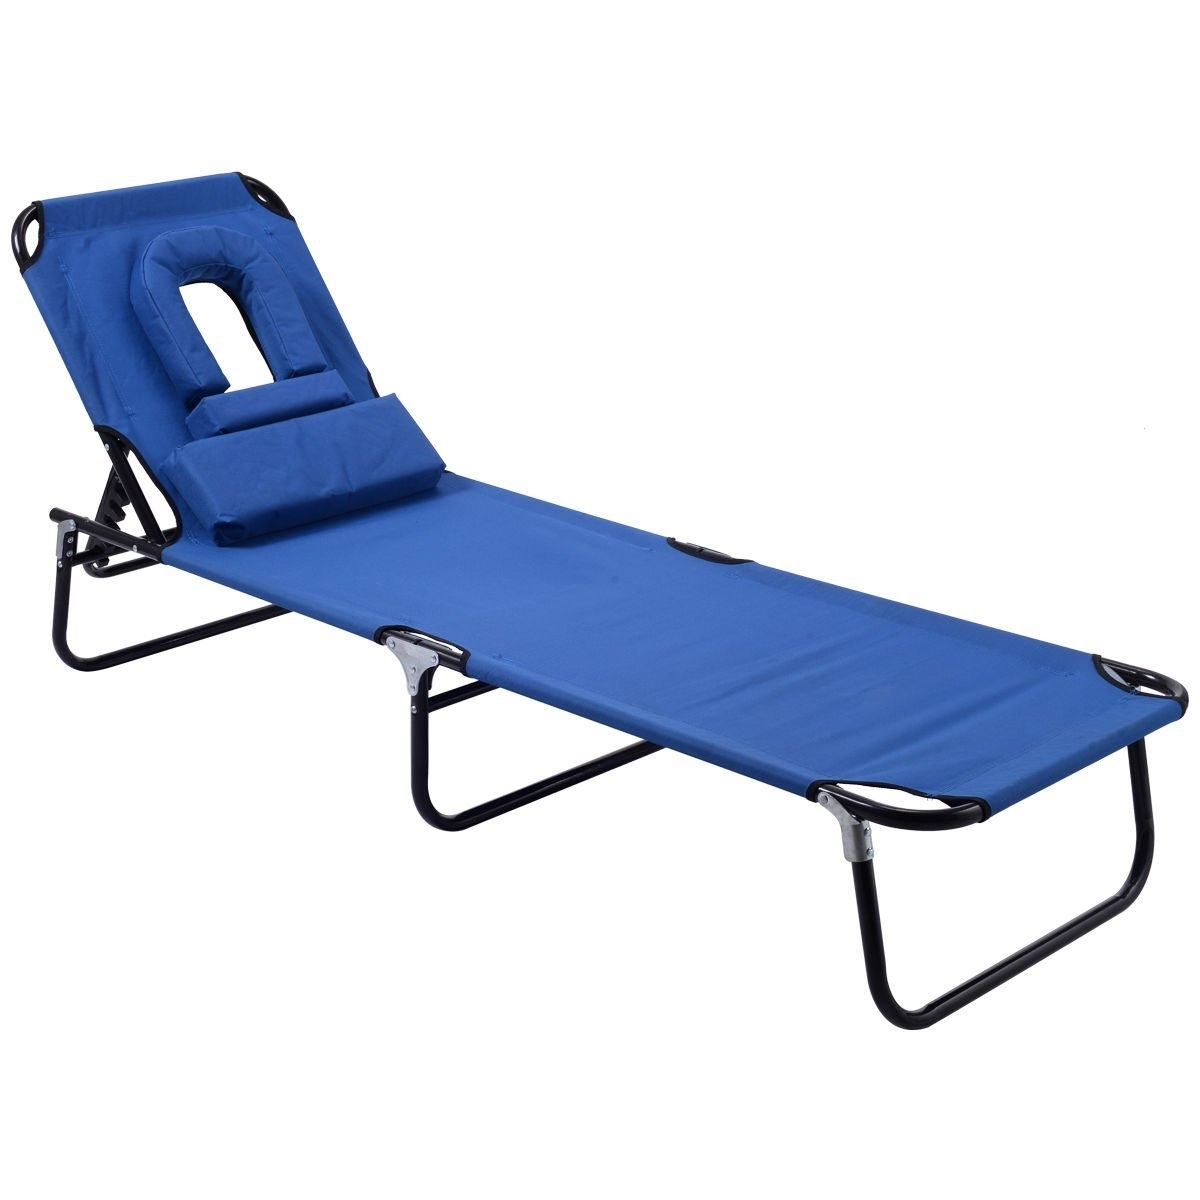 Recent Folding Chaise Lounge Lawn Chairs Regarding Amazon: Goplus Folding Chaise Lounge Chair Bed Outdoor Patio (View 13 of 15)